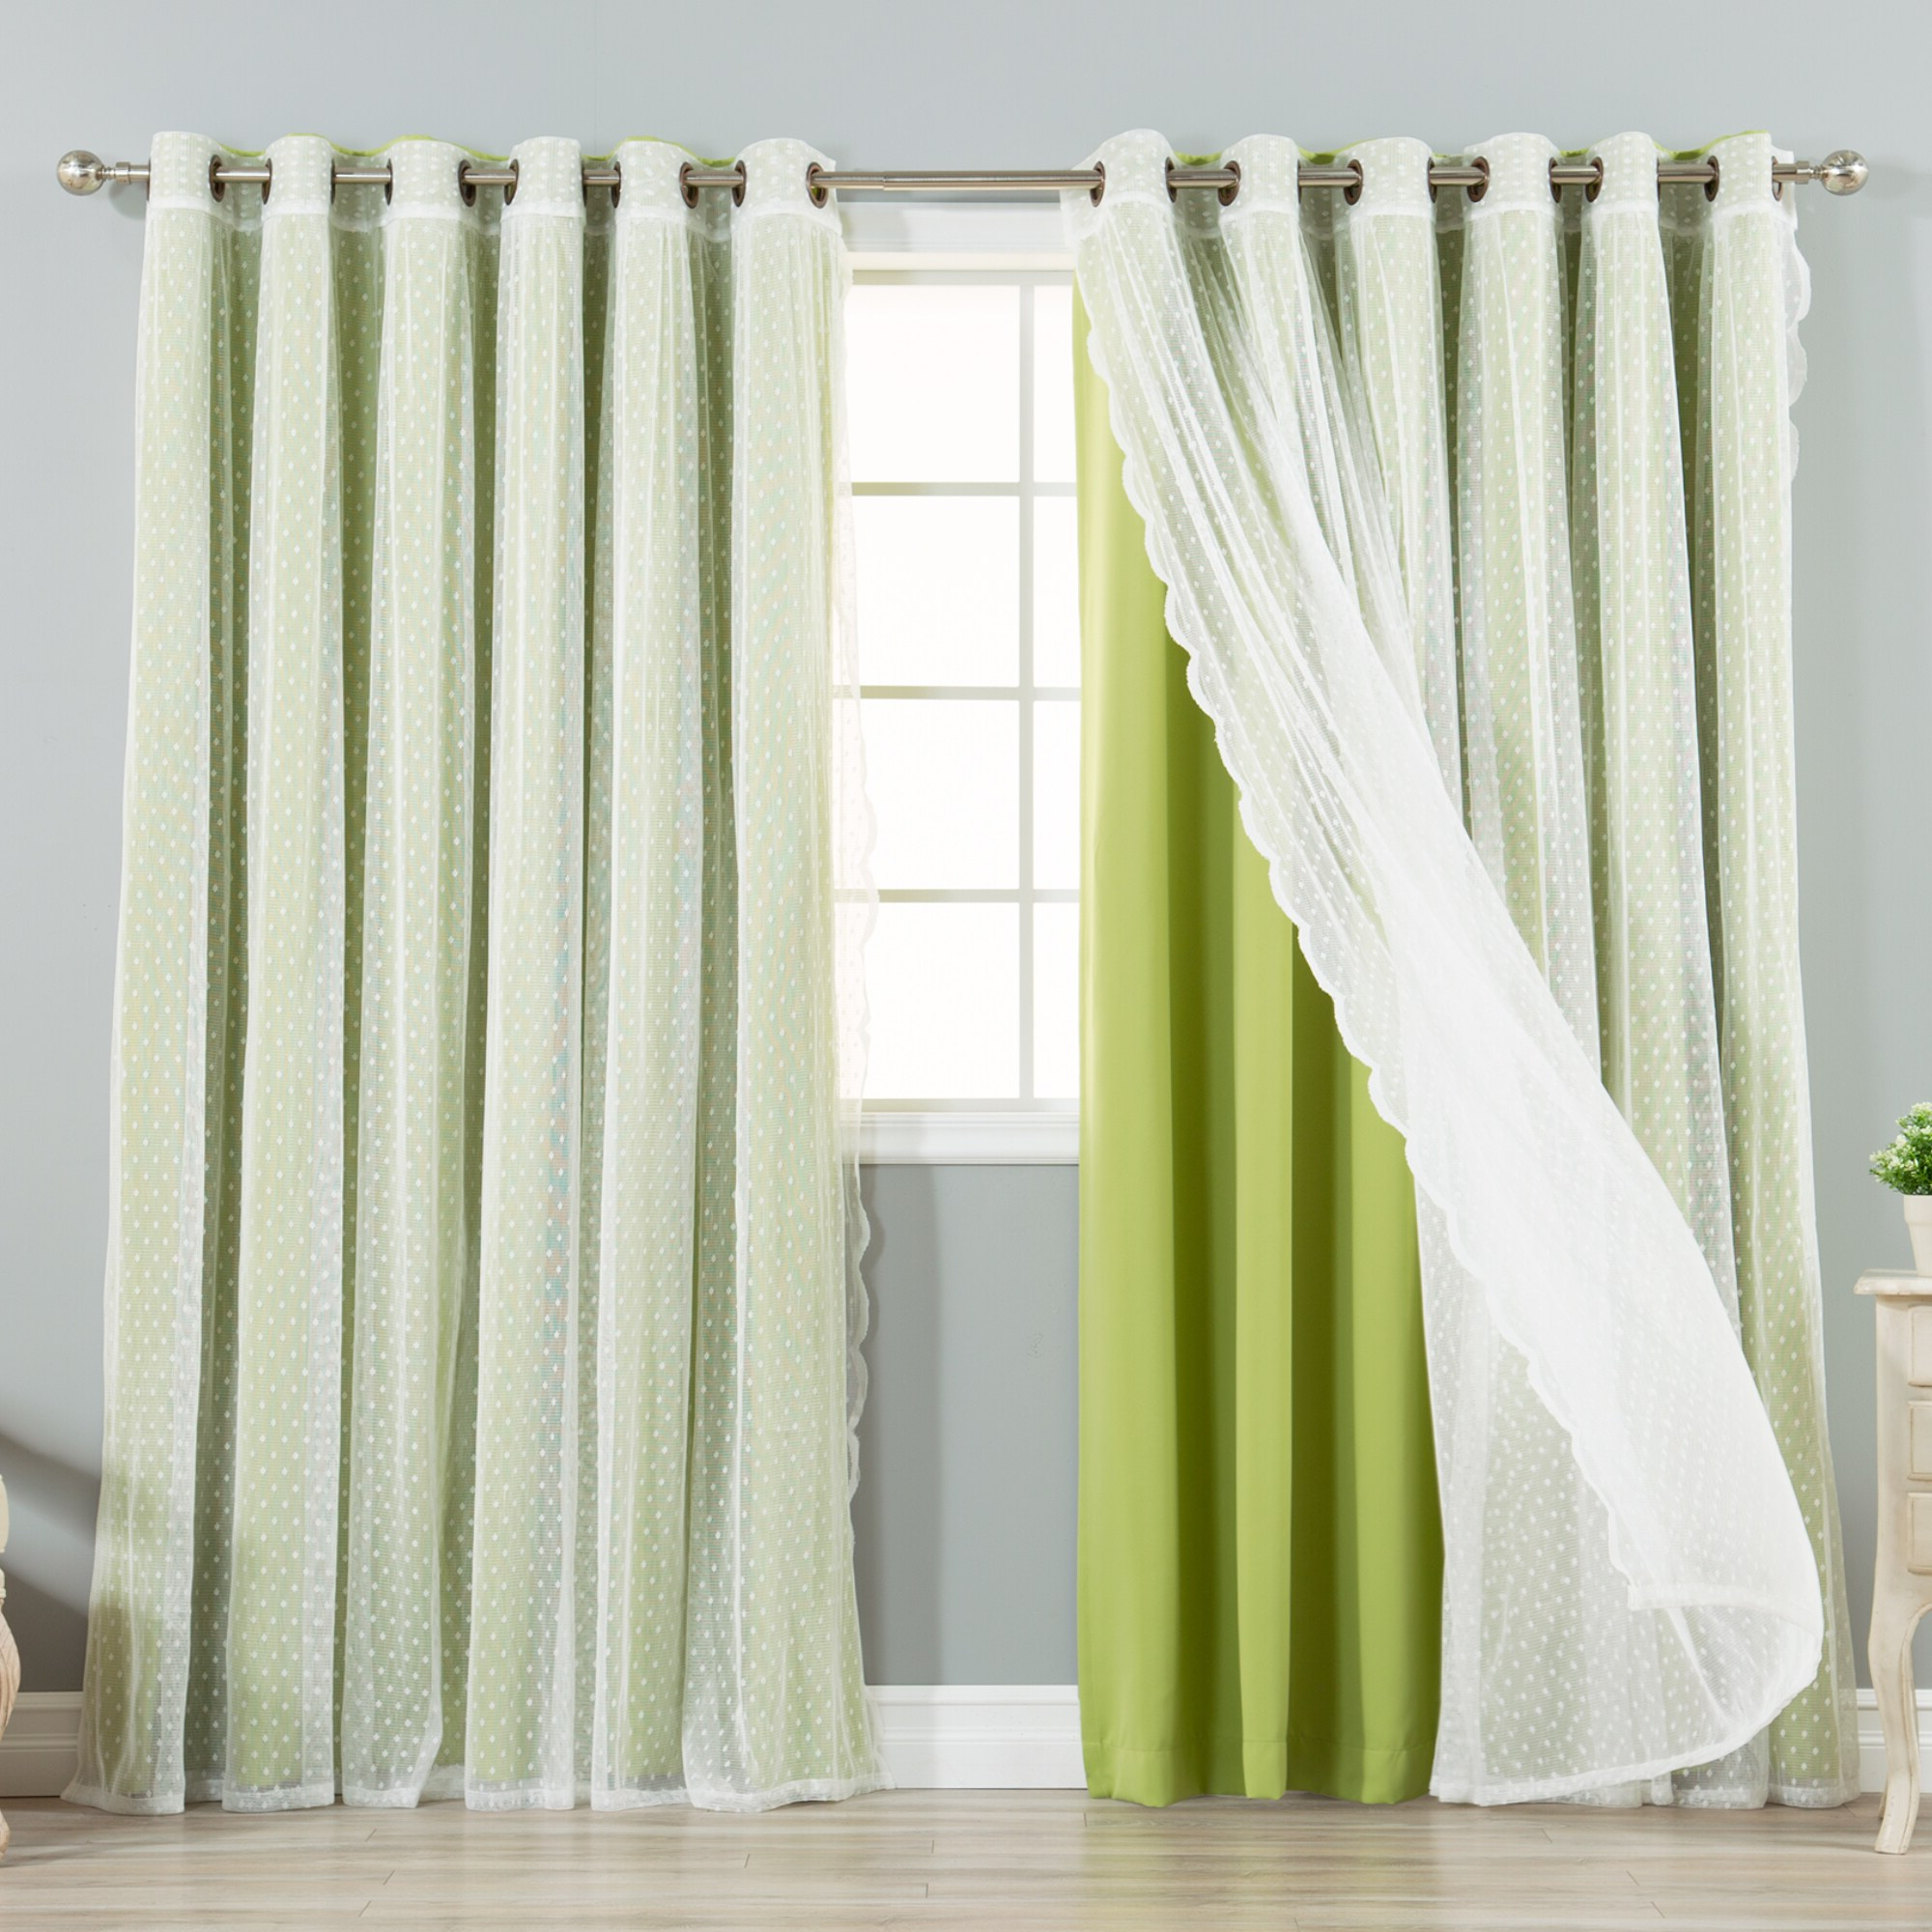 """Mix & Match Extra Wide Blackout And Dot Lace Sheer 2 Piece Curtain Panel Set – 52""""w X 84""""l Within Widely Used Mix And Match Blackout Tulle Lace Sheer Curtain Panel Sets (View 12 of 20)"""